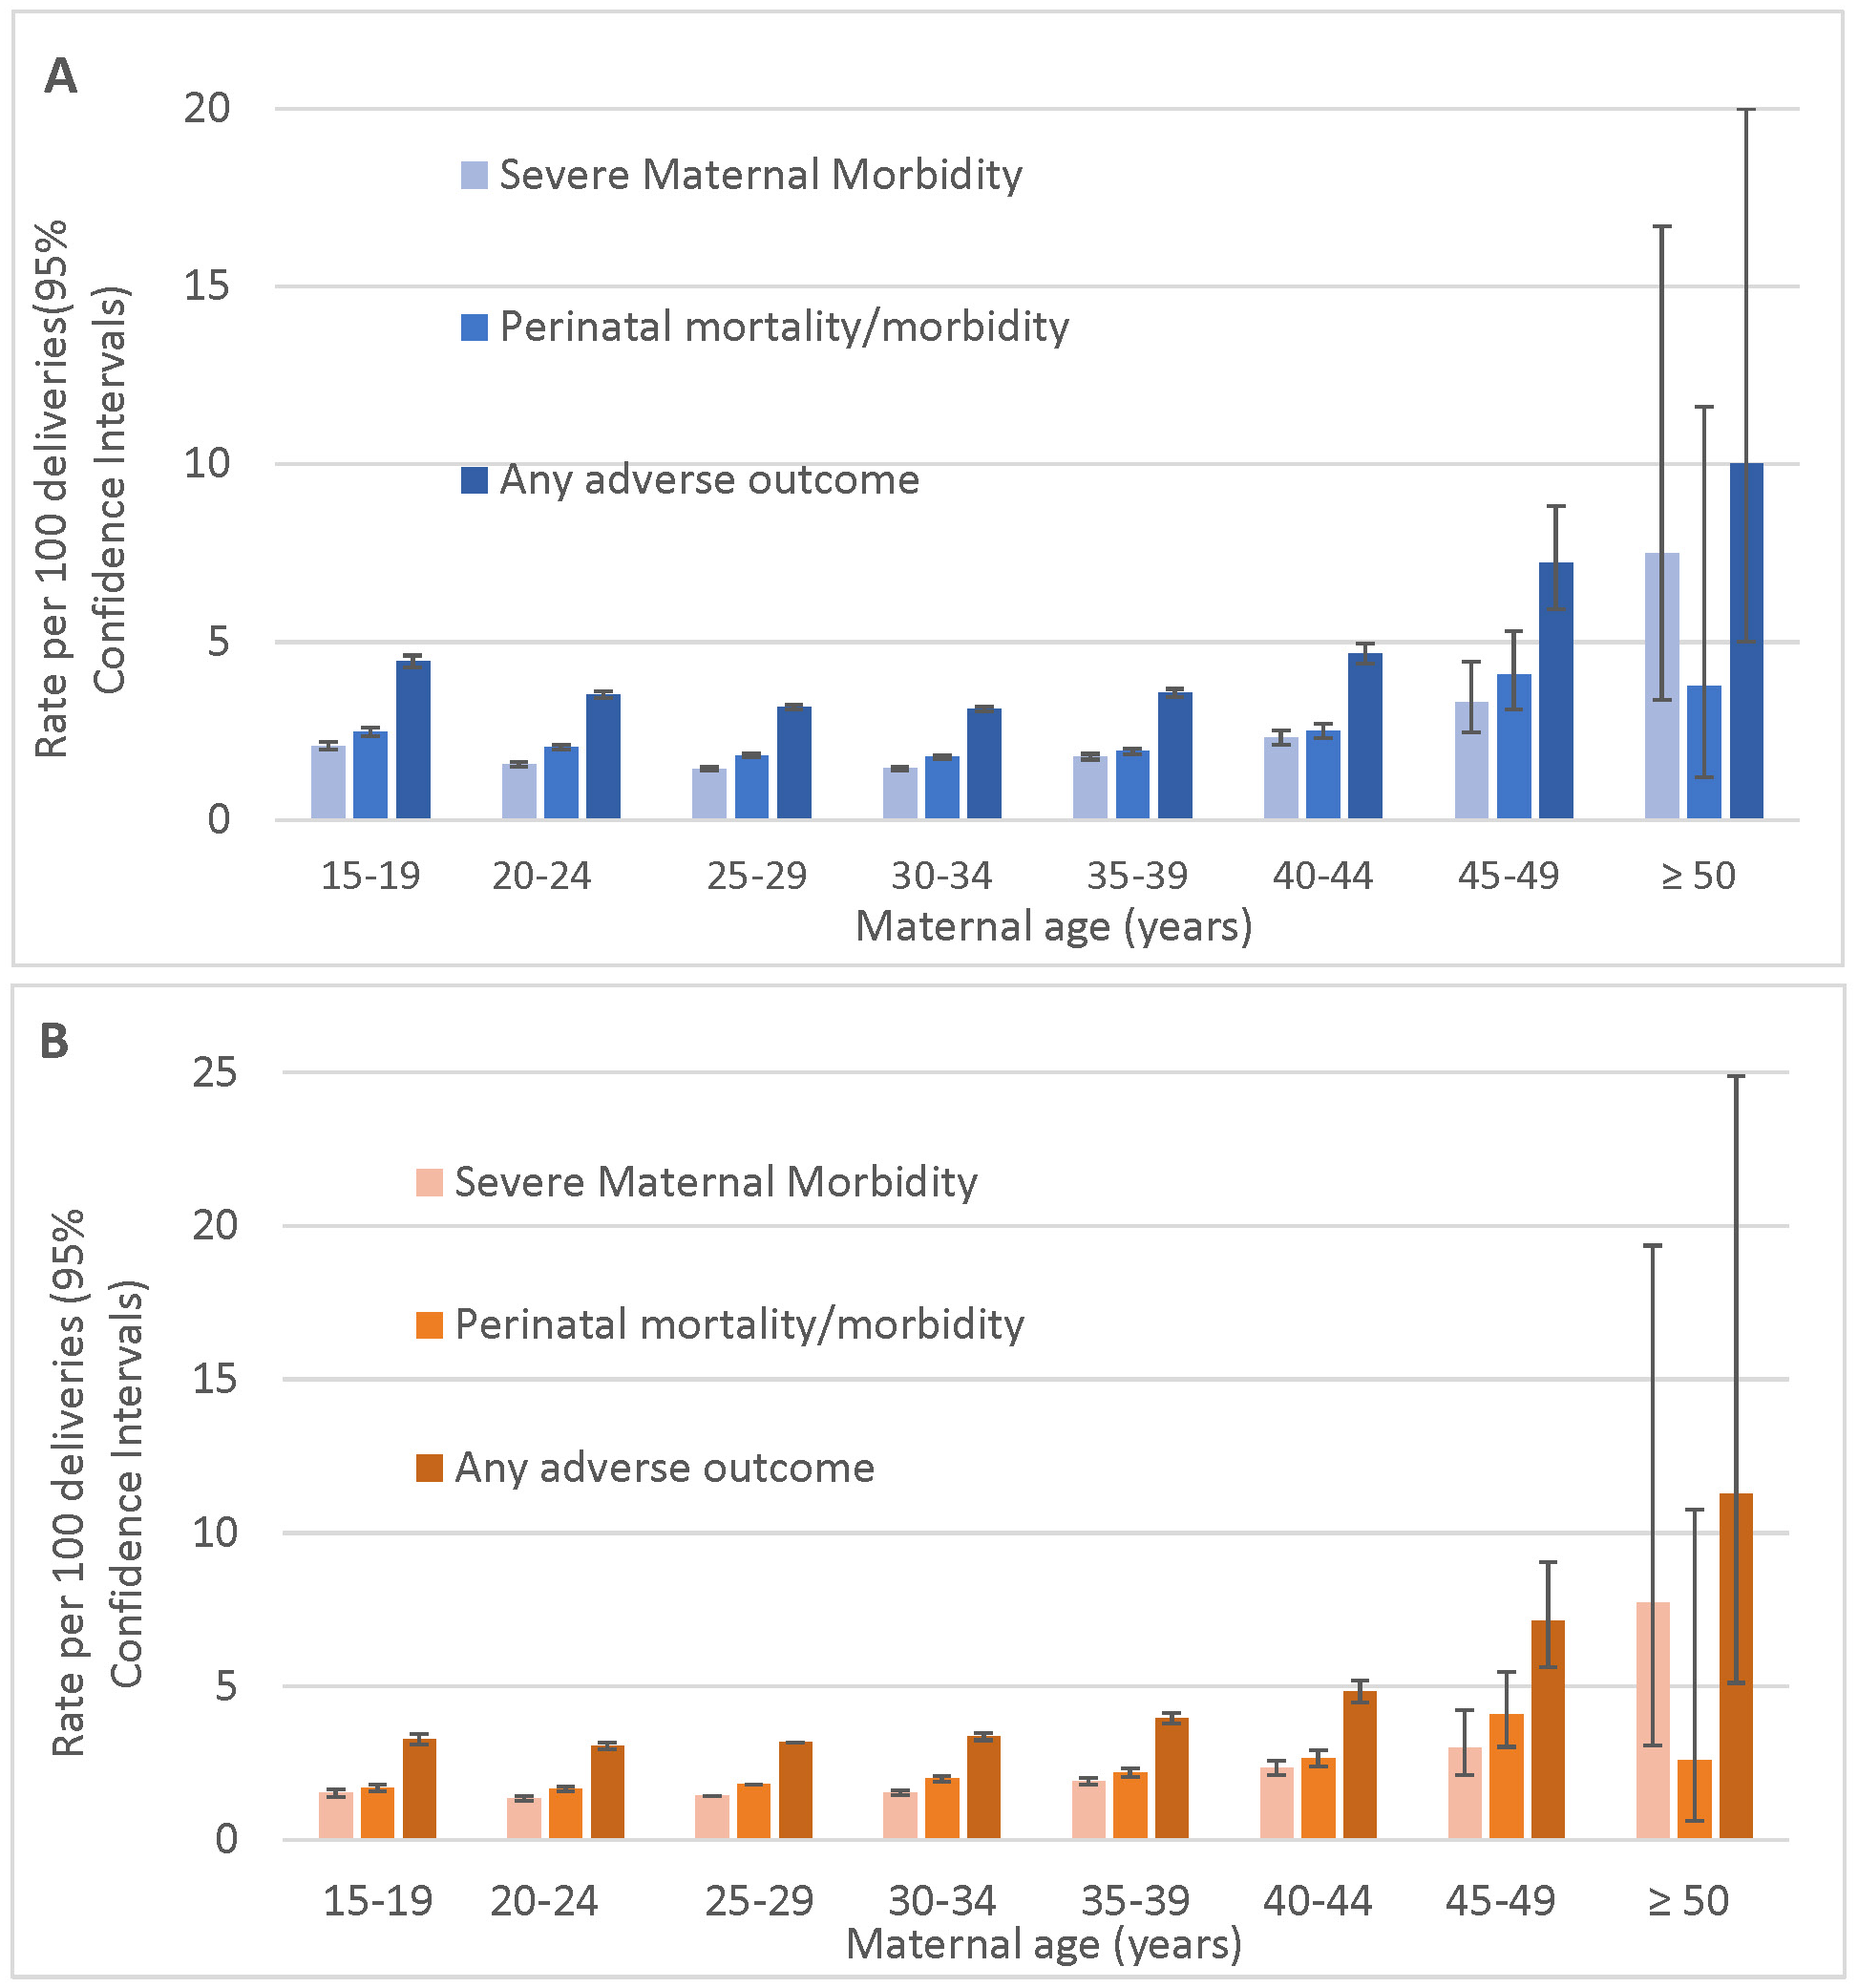 Age-specific rates of severe maternal morbidity and perinatal mortality/severe neonatal morbidity.